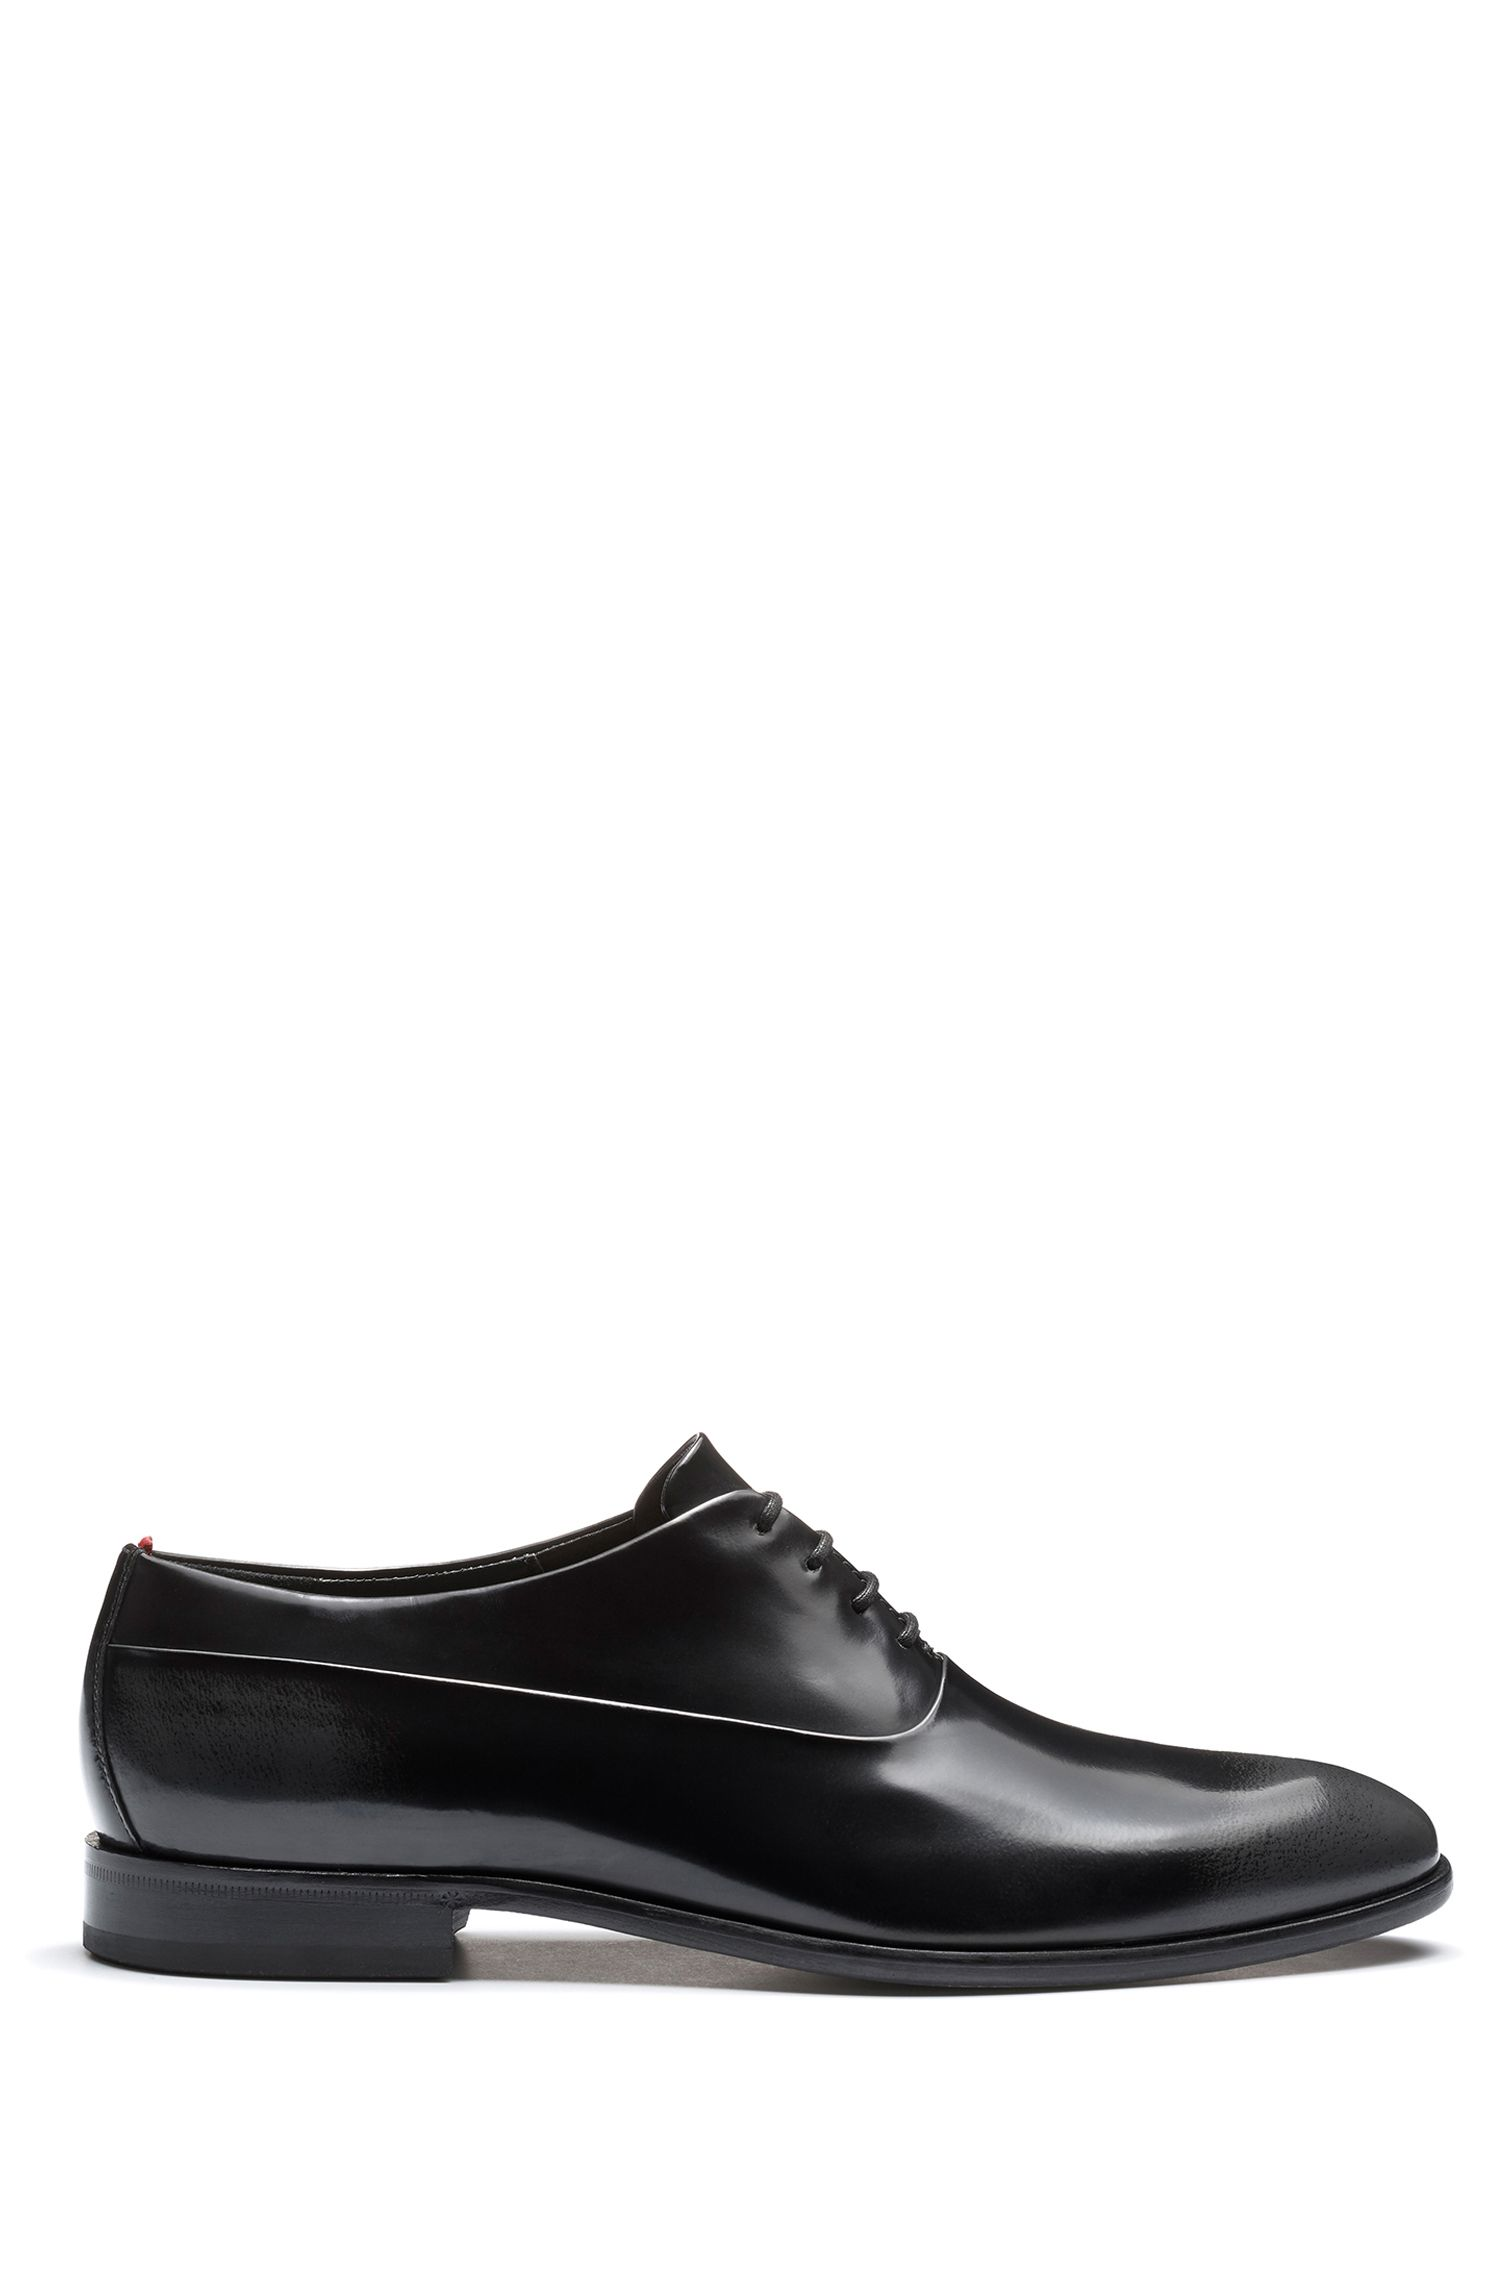 Two-tone Oxford shoes in brush-off leather